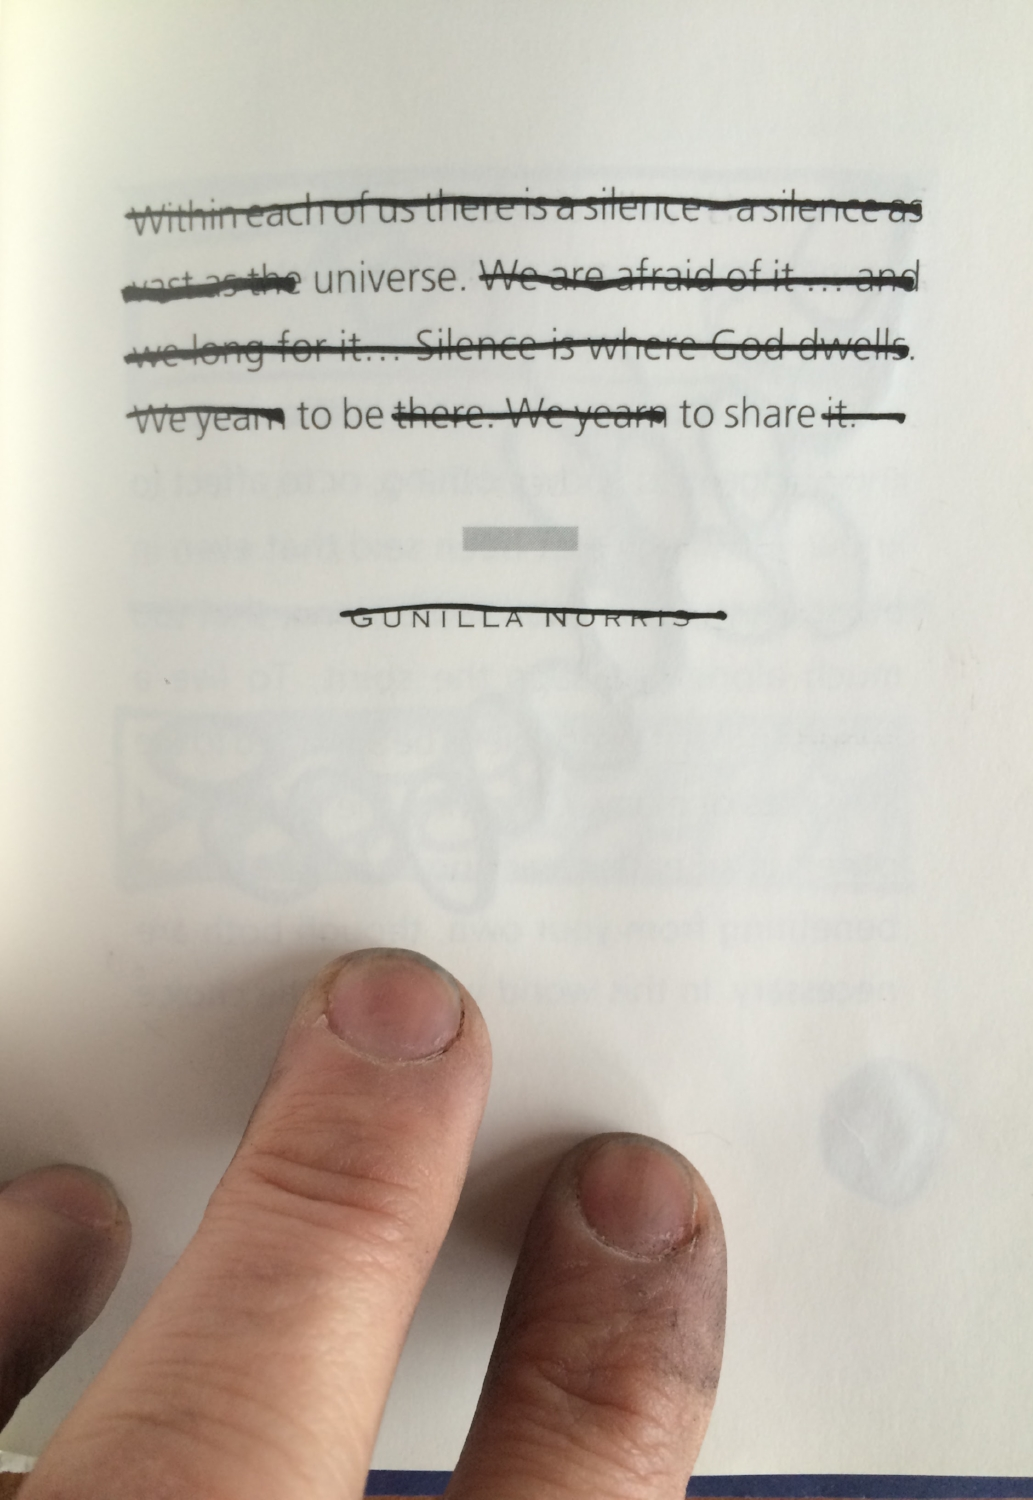 Universe  to be  to share  Book, ink and time.